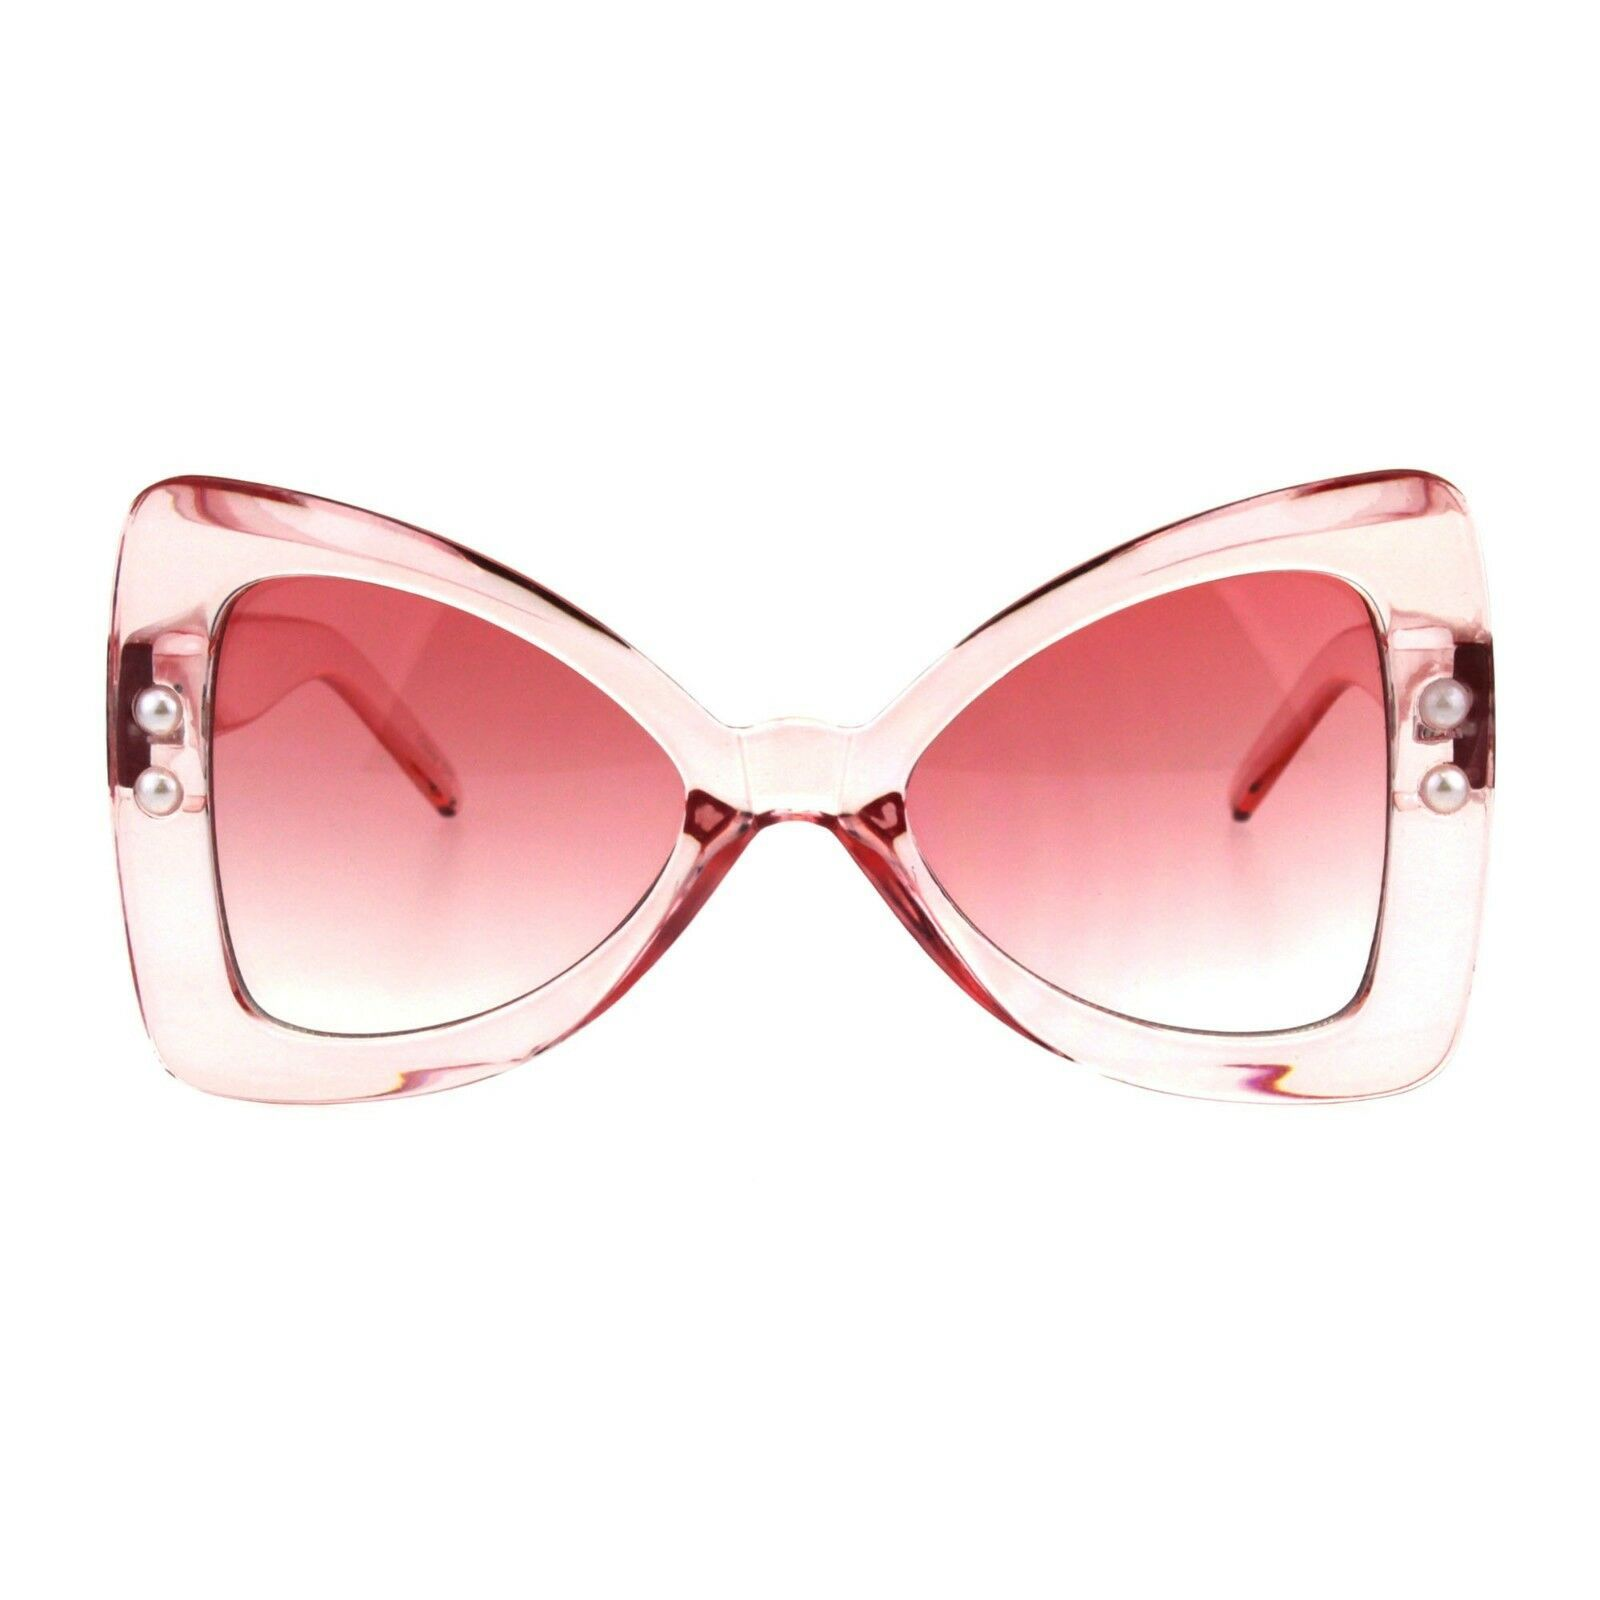 Butterfly Ribbon Bow Pearl Frame Sunglasses Womens Oversized Shades